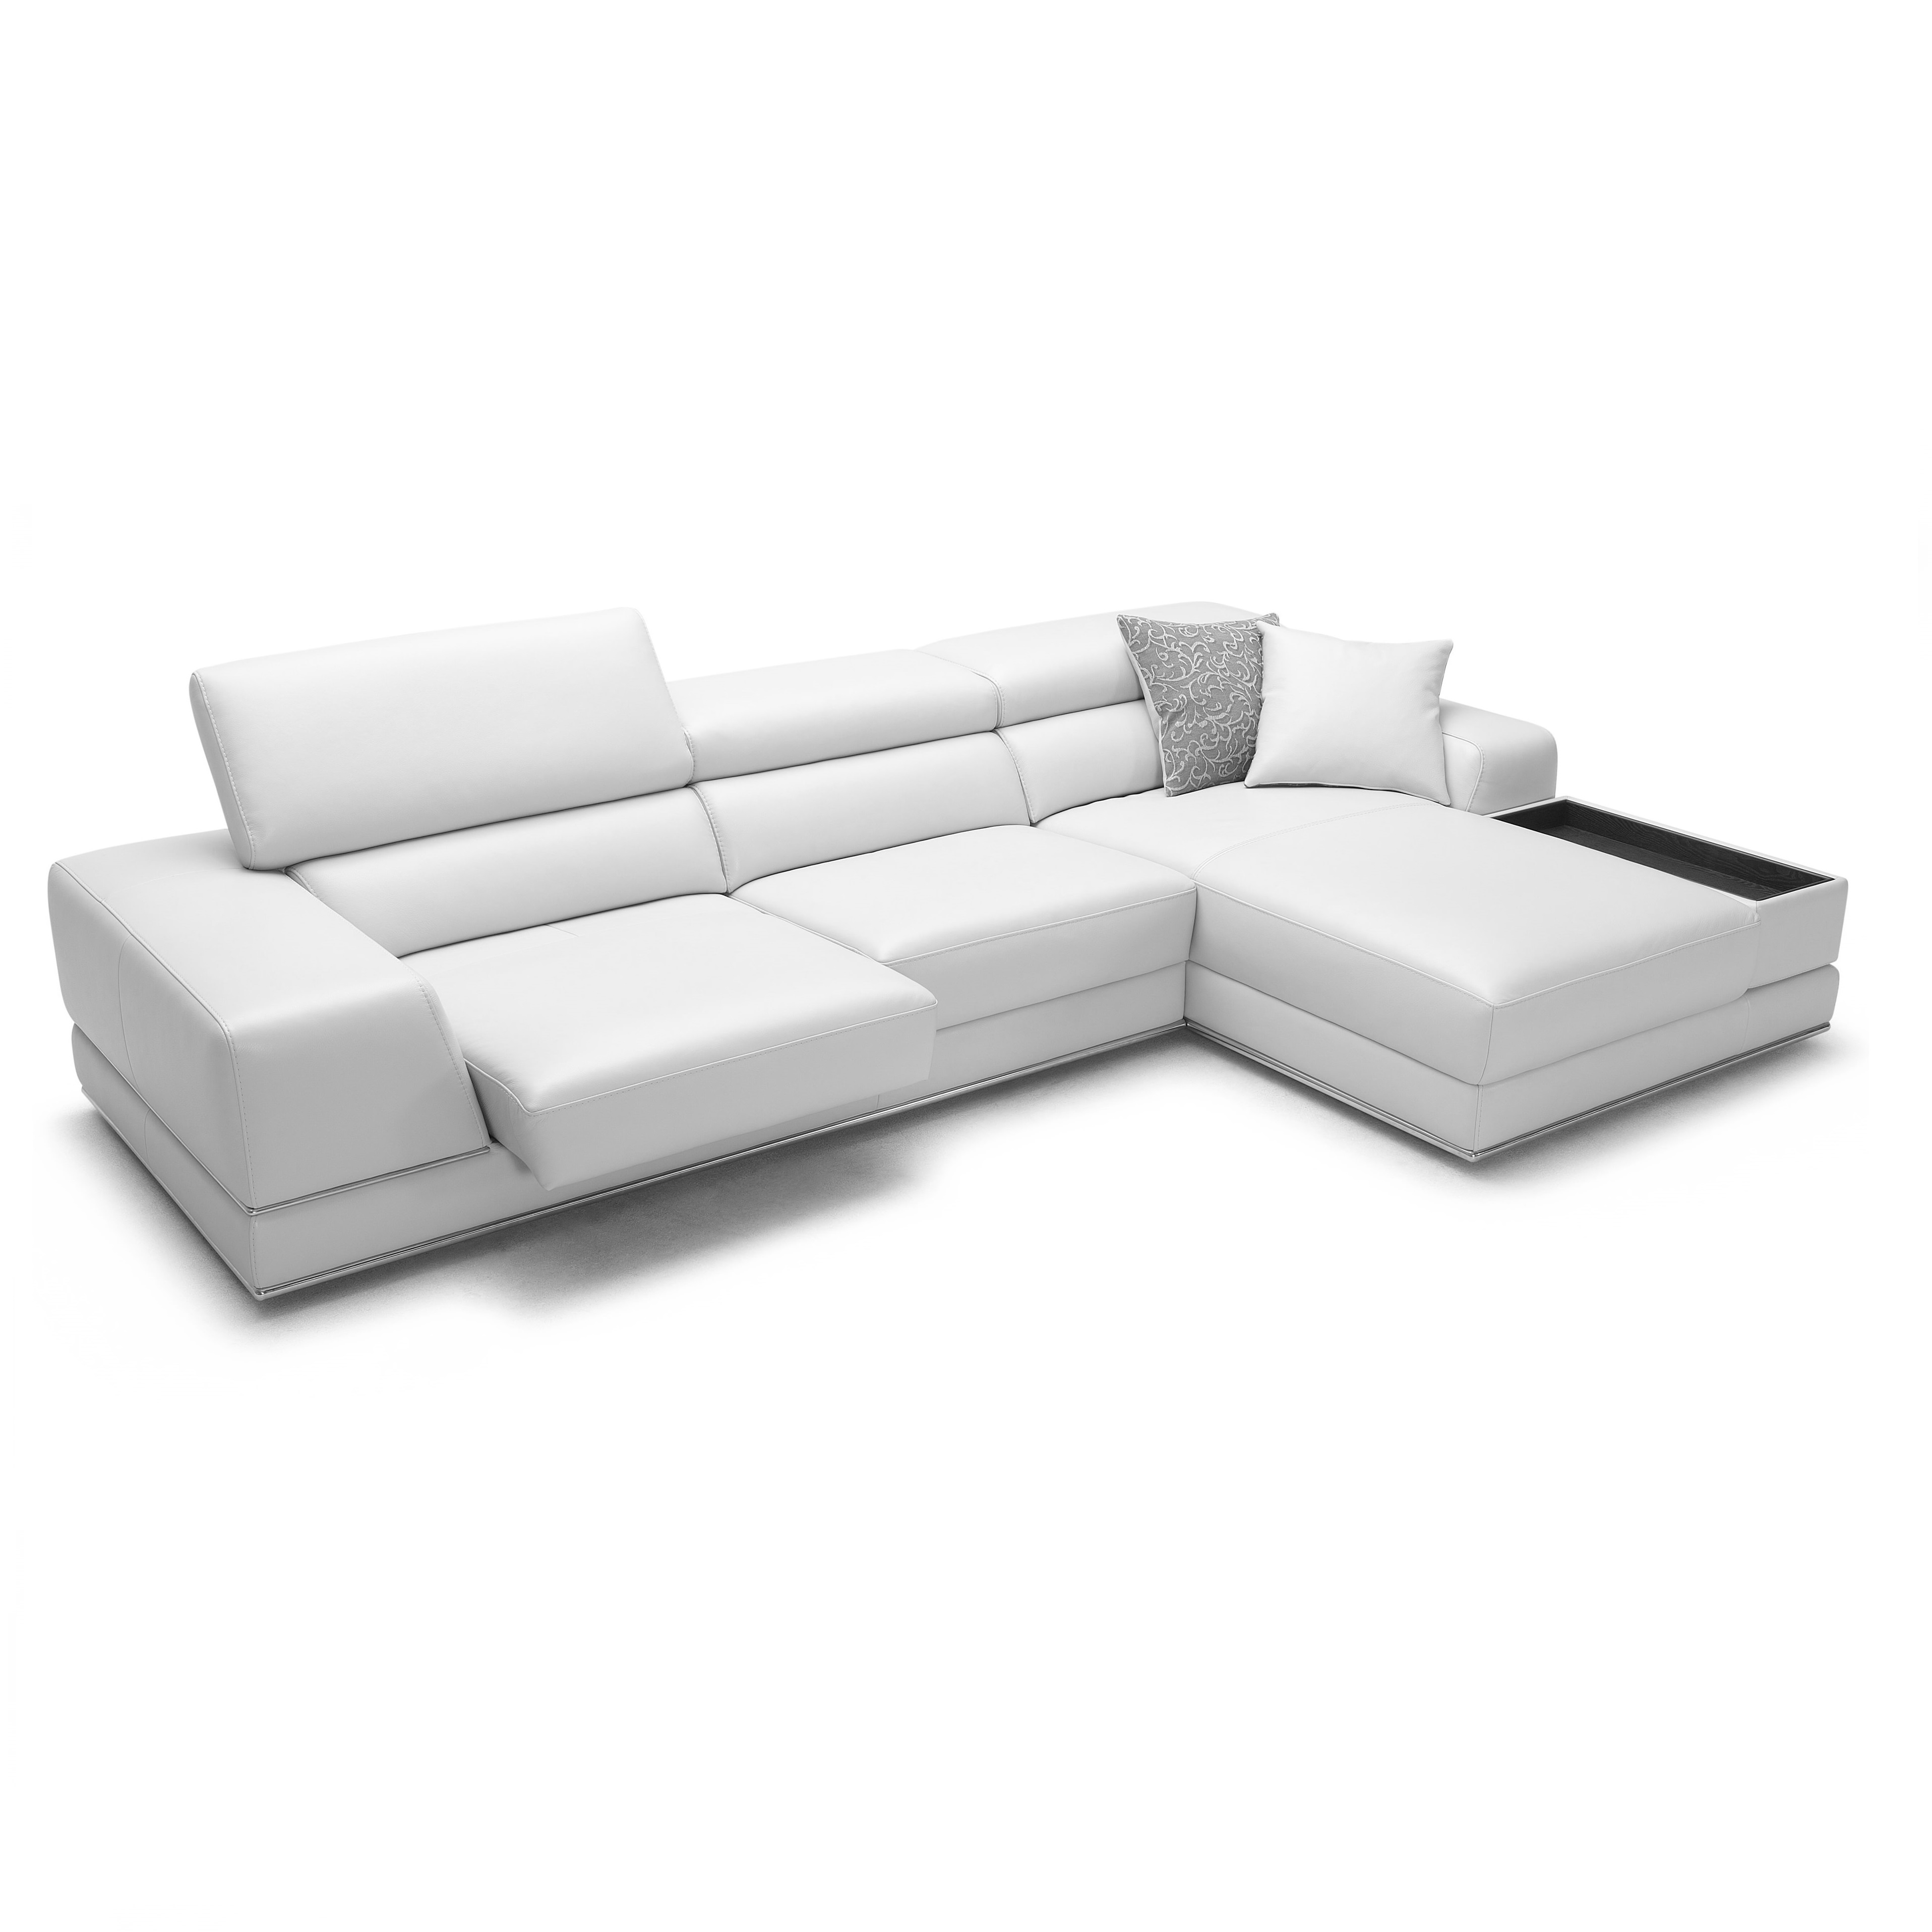 White Modern Chair Premium Reclining Sectional White Leather Modern Bergamo Sofa